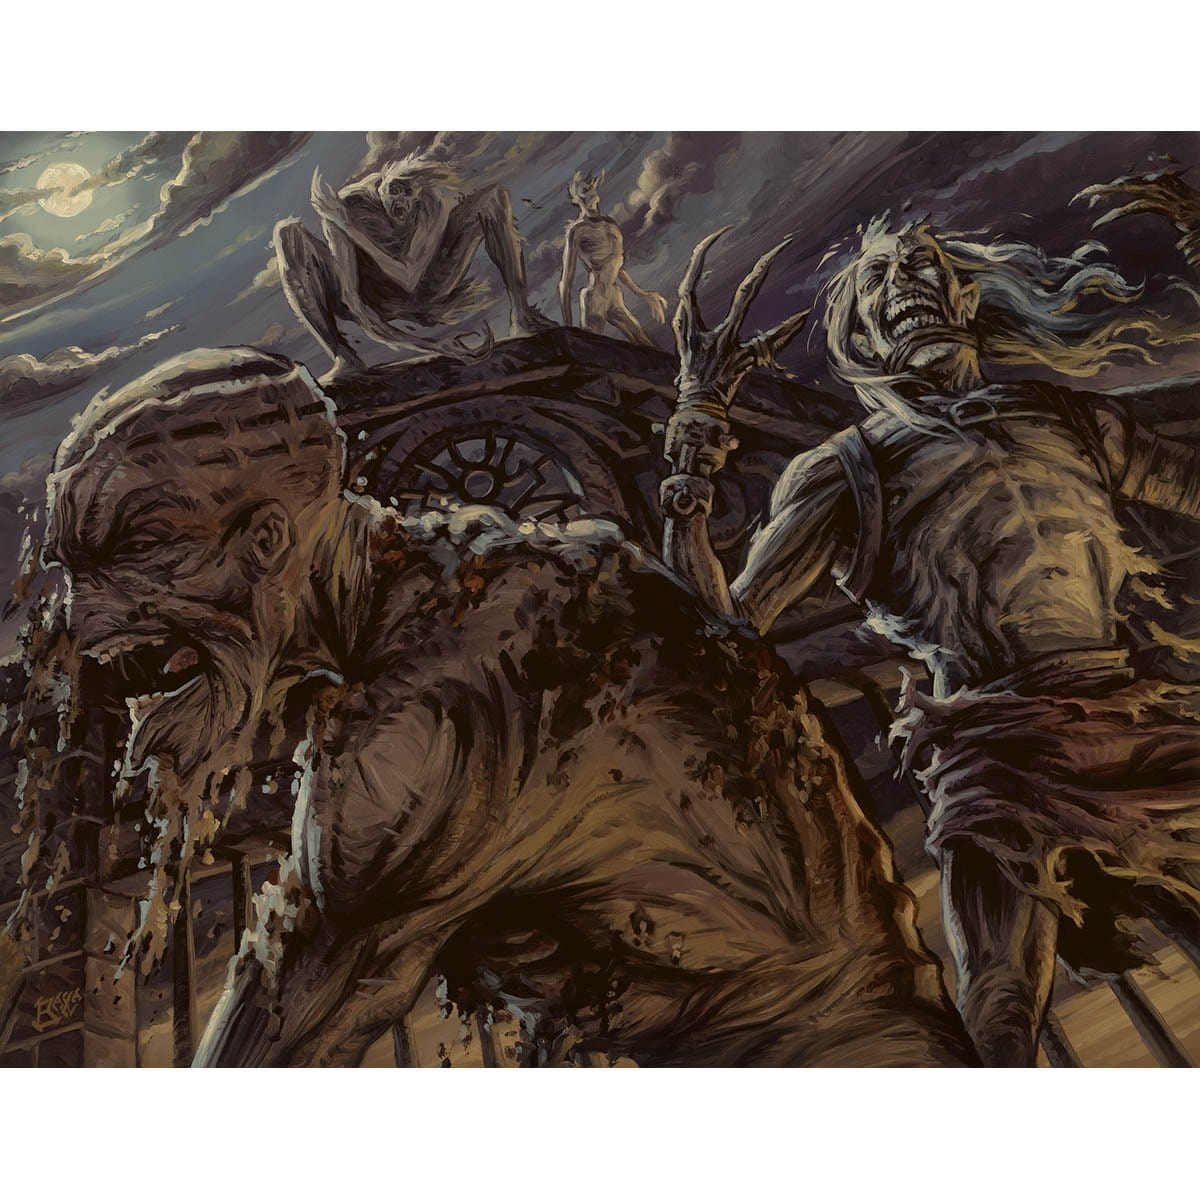 Zombie Infestation Print - Print - Original Magic Art - Accessories for Magic the Gathering and other card games